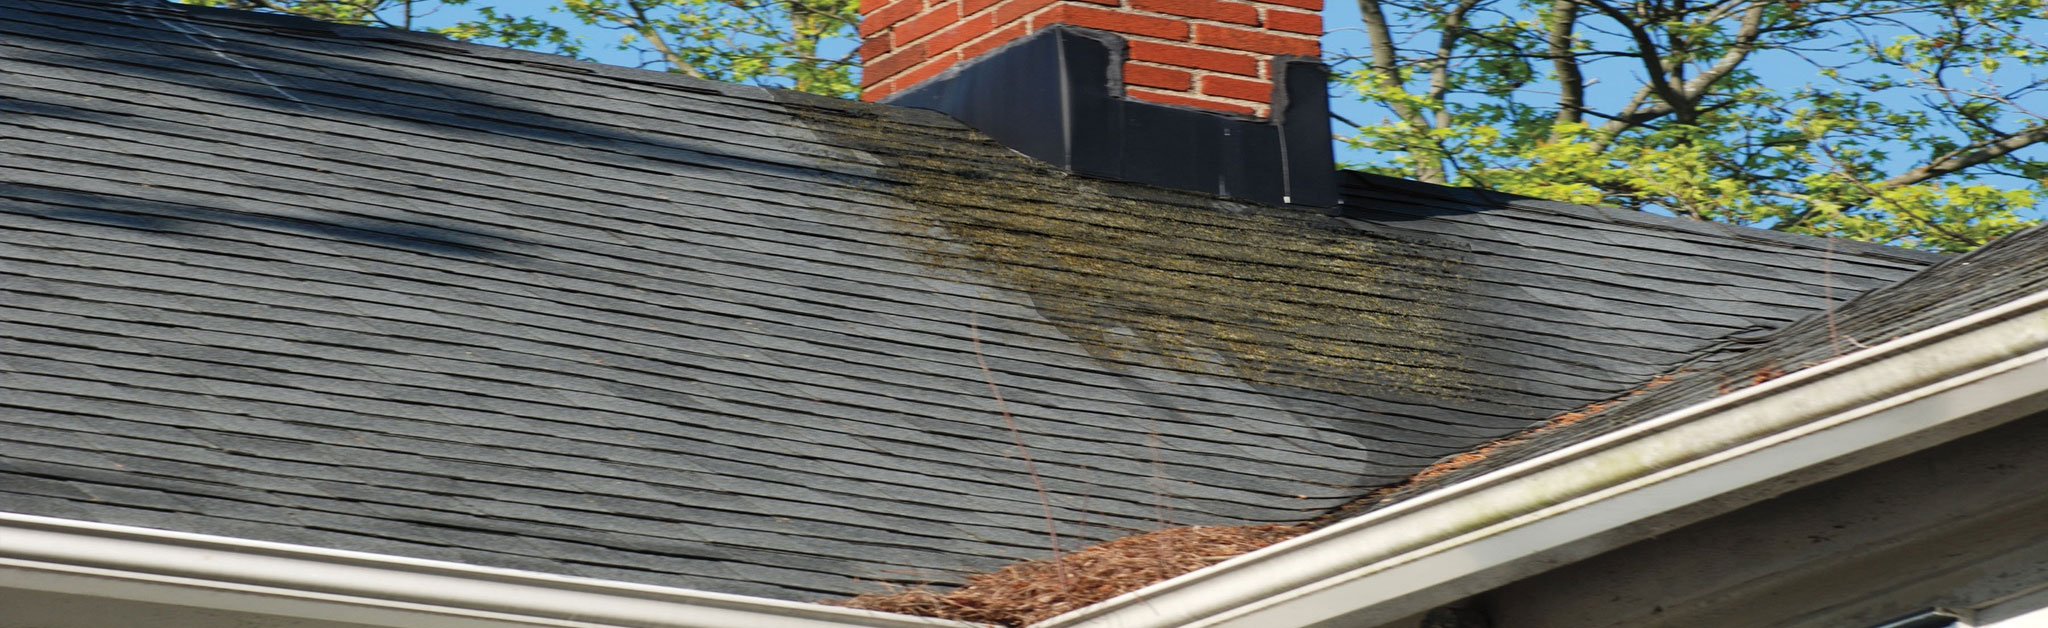 KW Billman Roofing Images